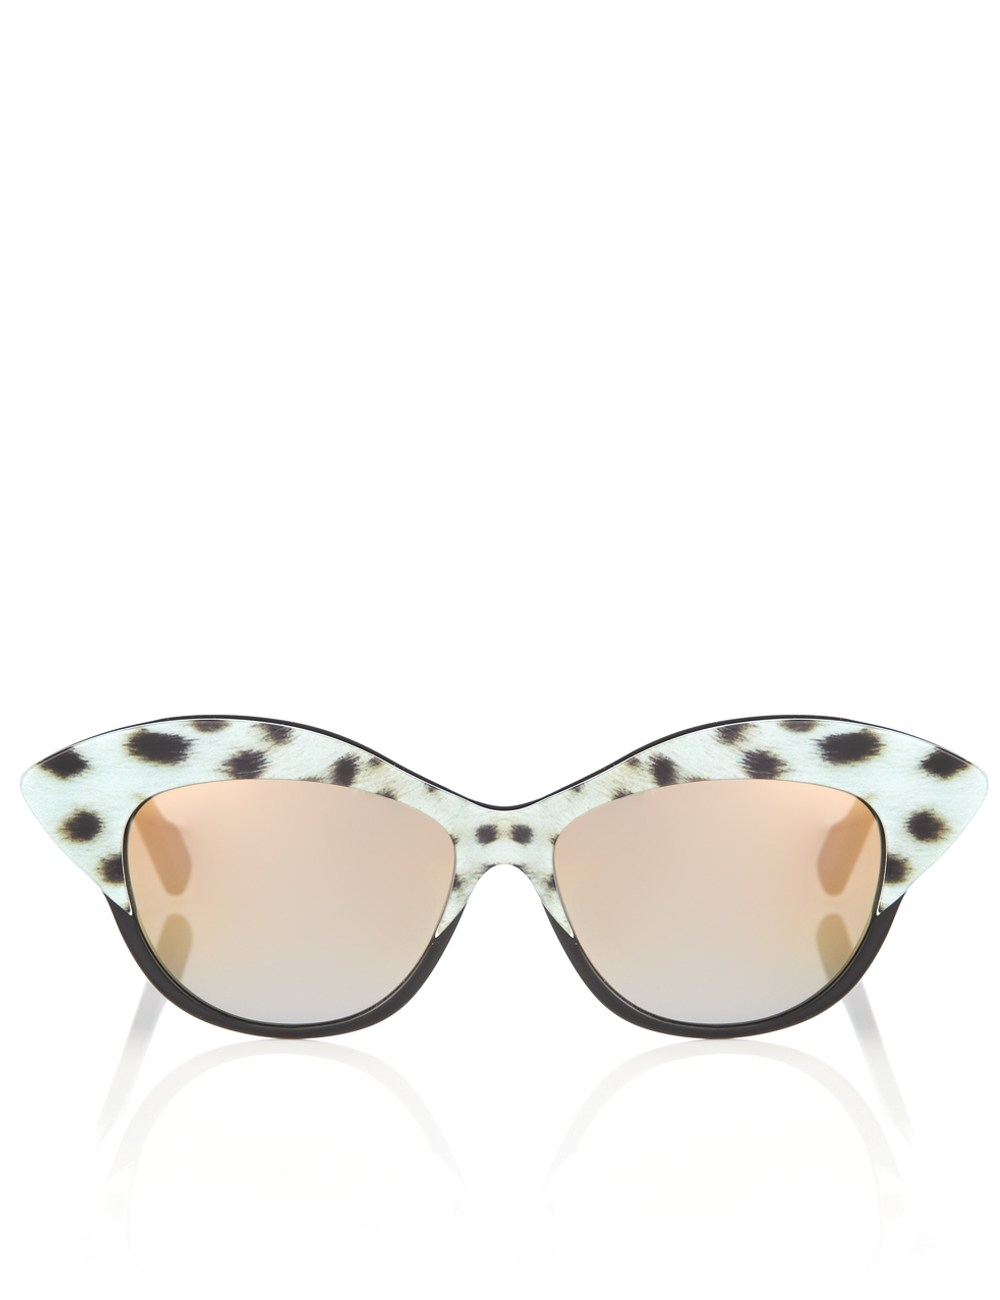 Sunglasses With Ocelot Print